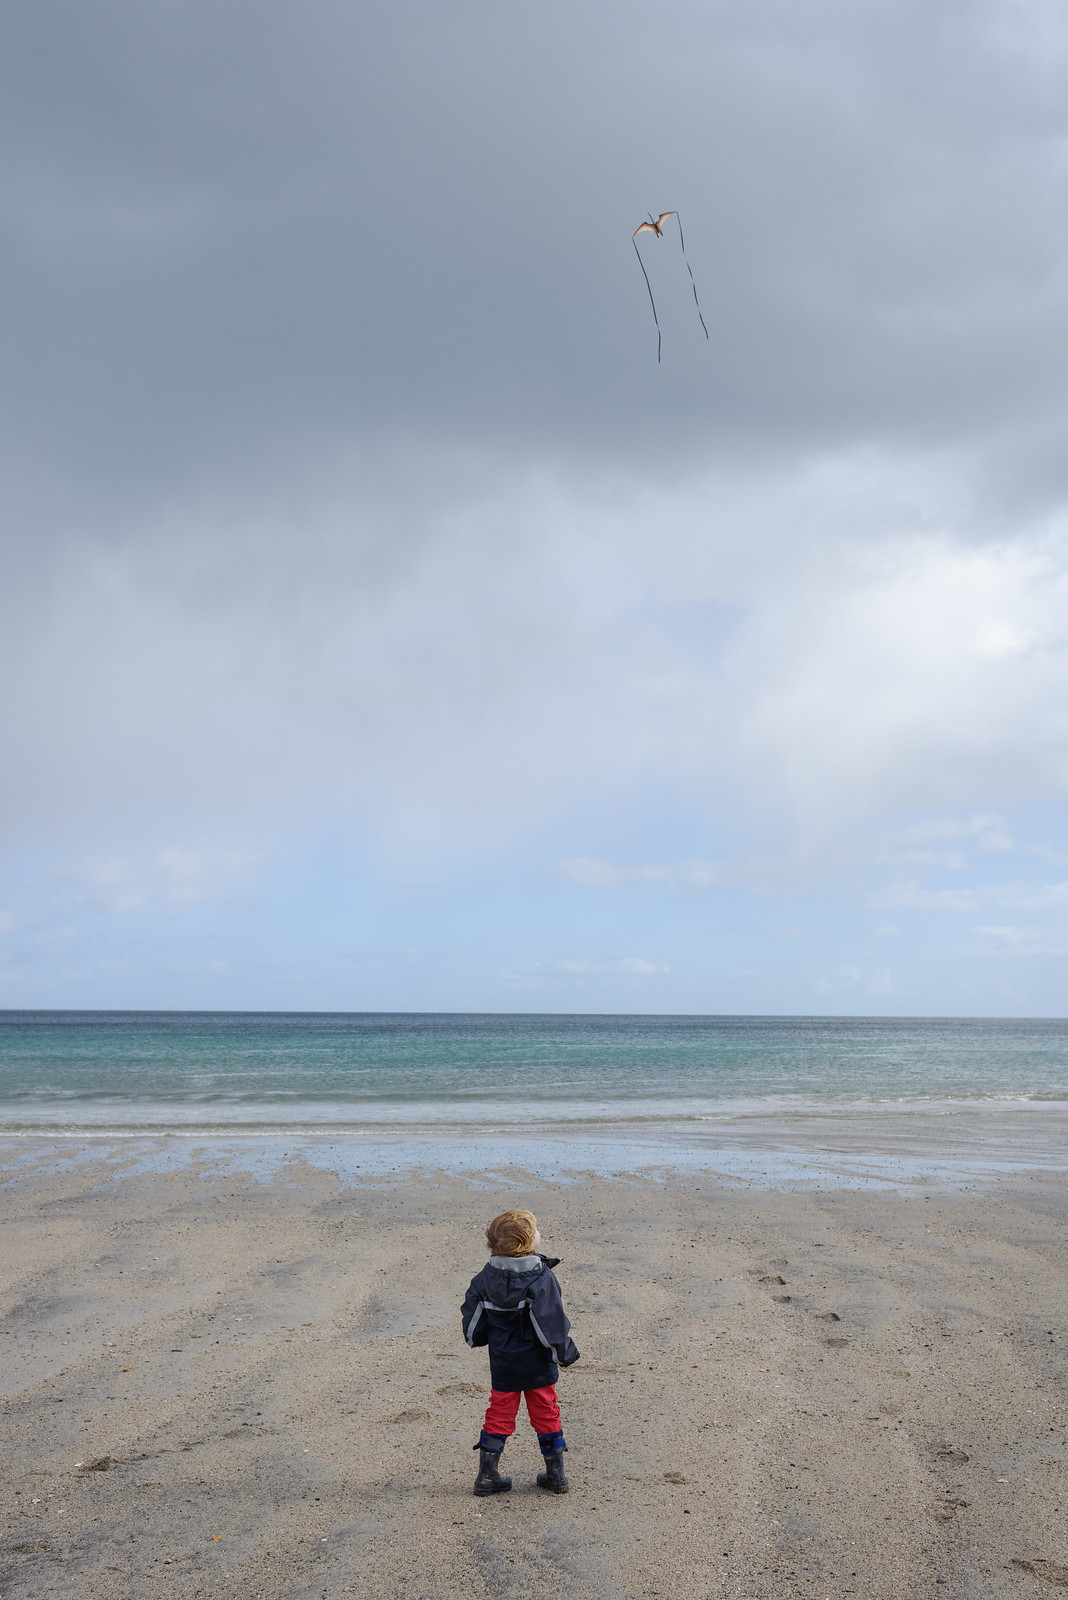 Watching the Kite